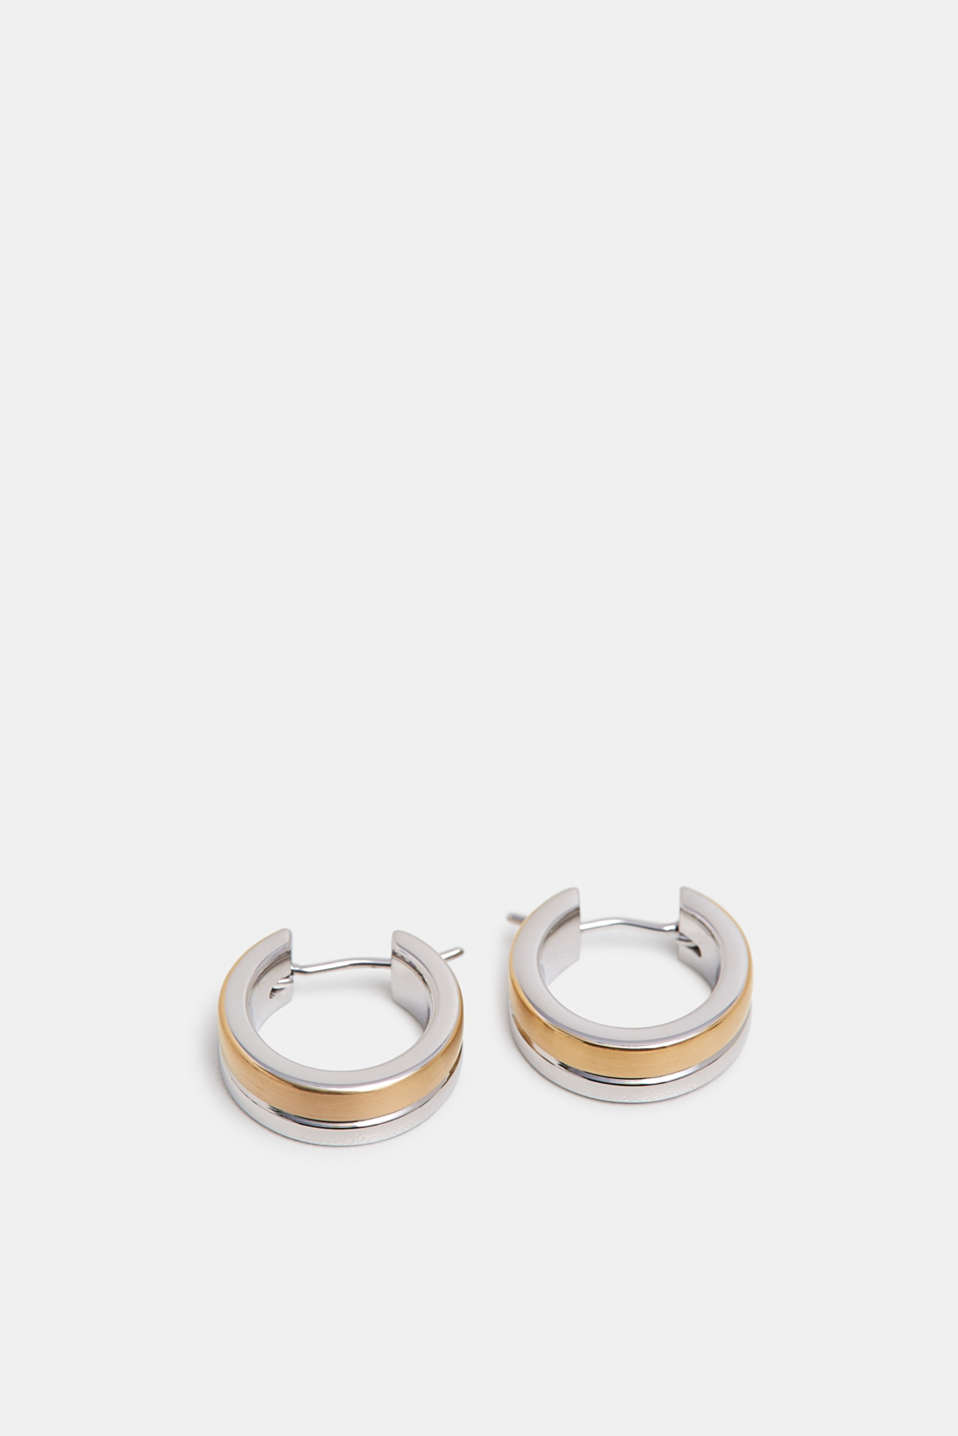 Two-tone earrings in stainless steel, GOLD, detail image number 1